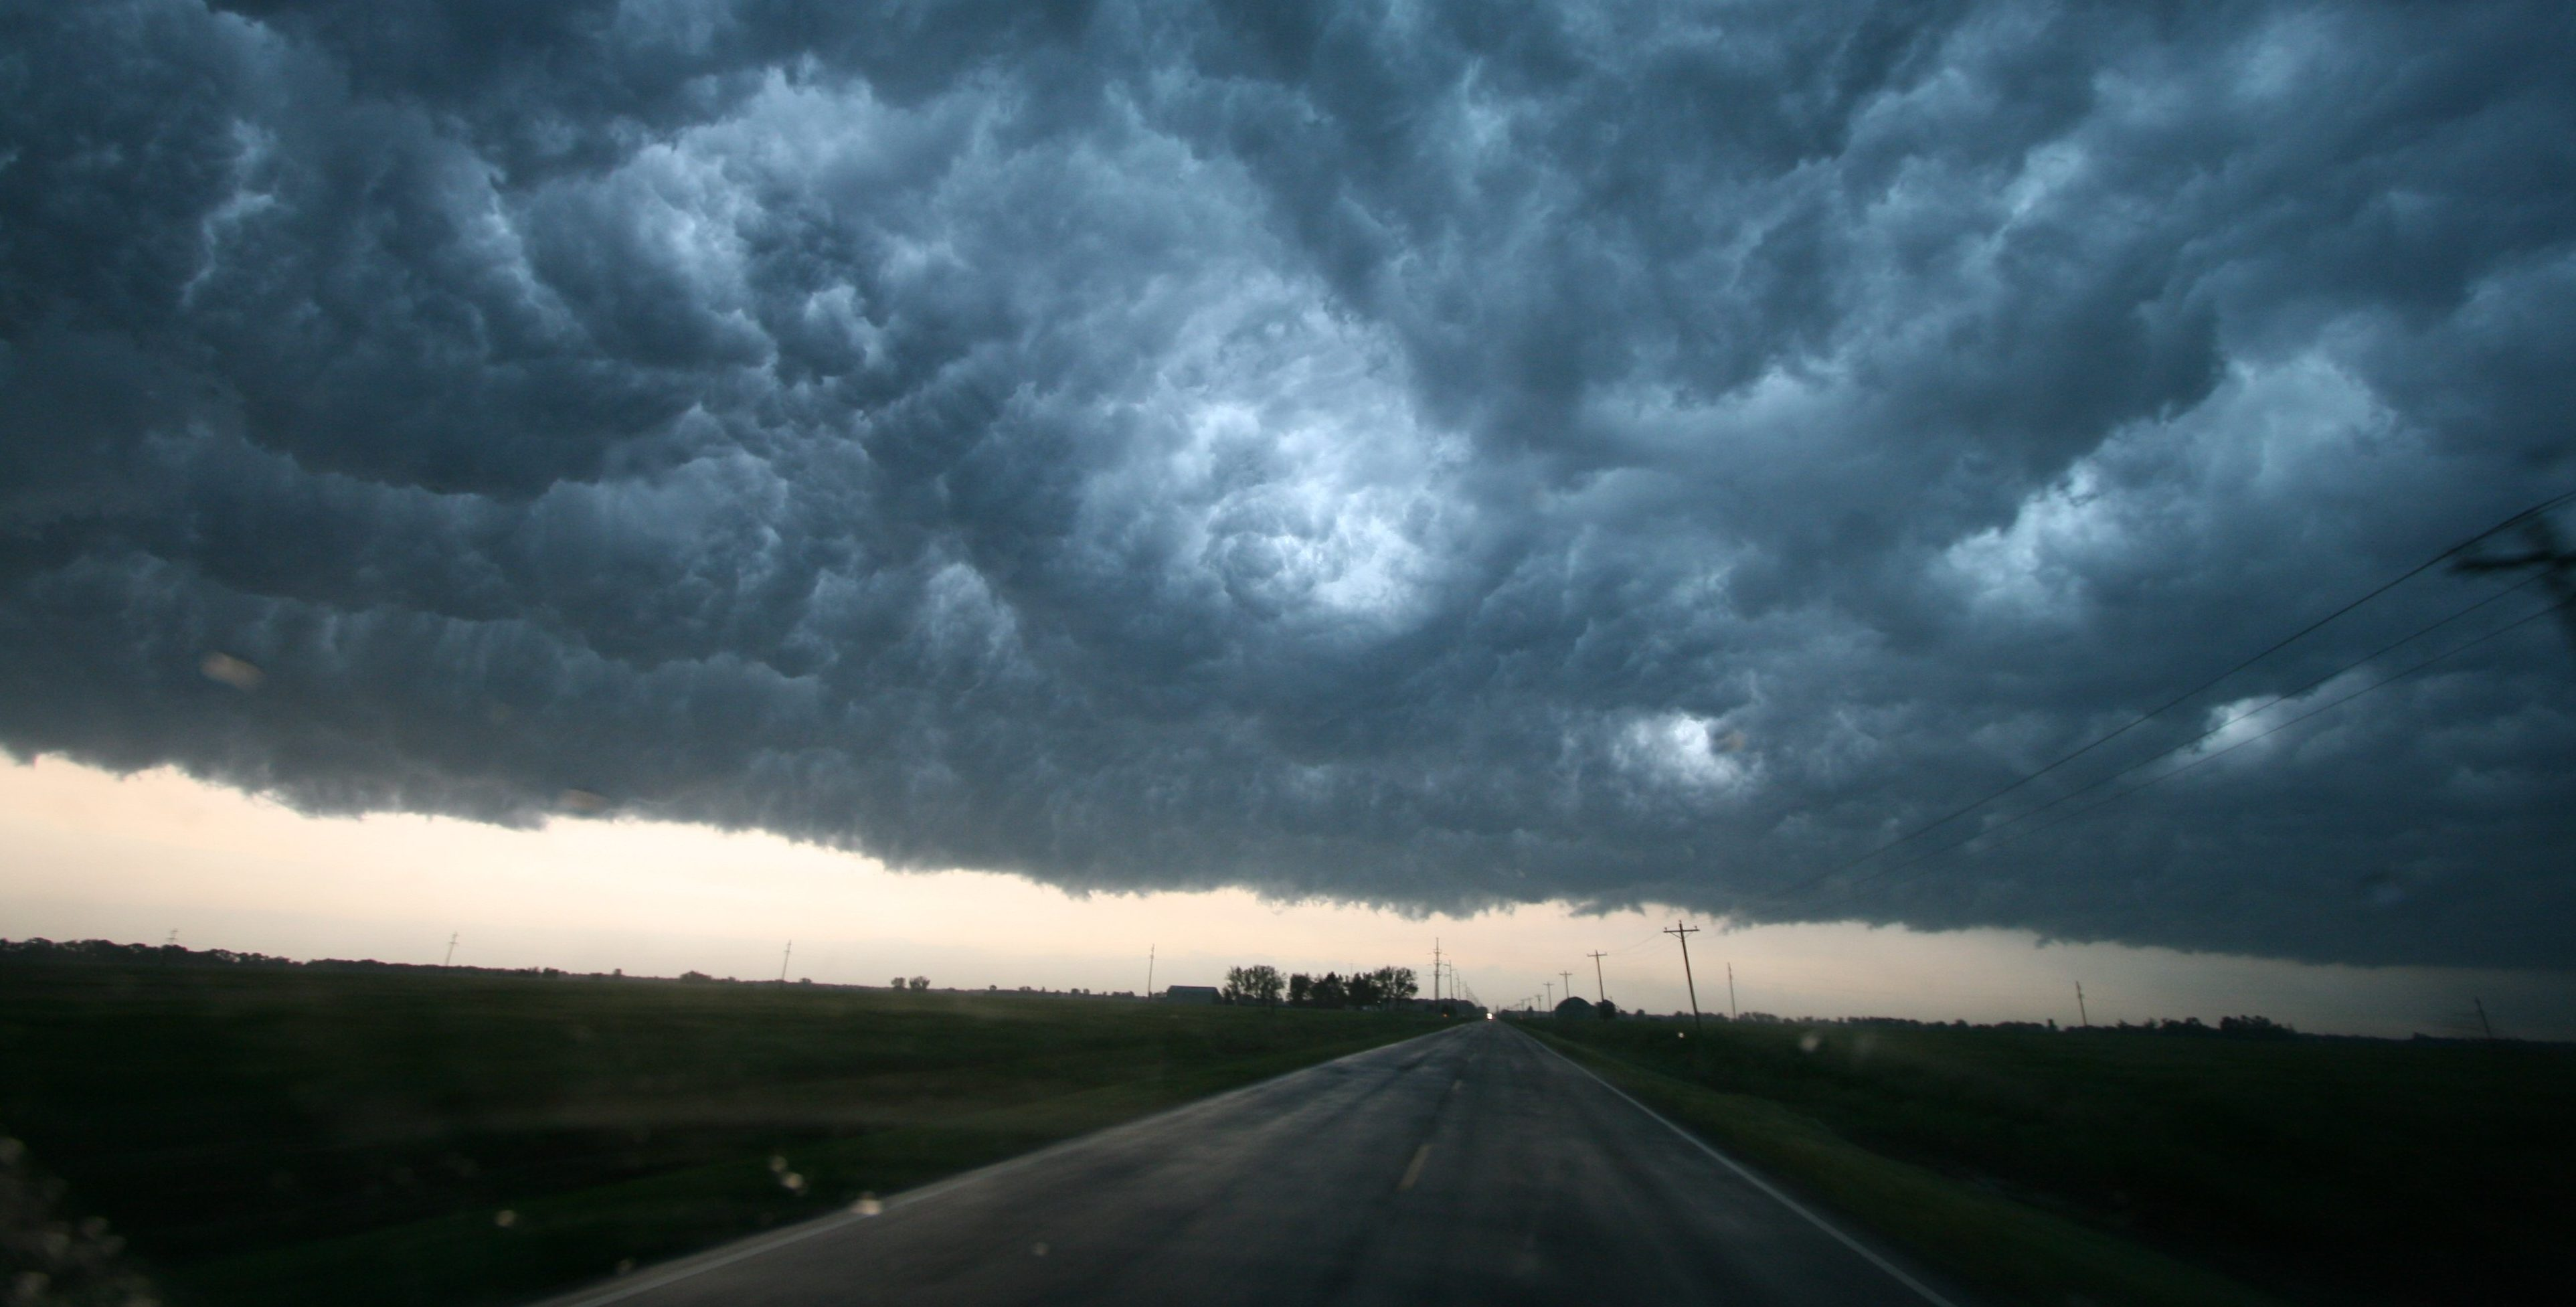 storm clouds above road